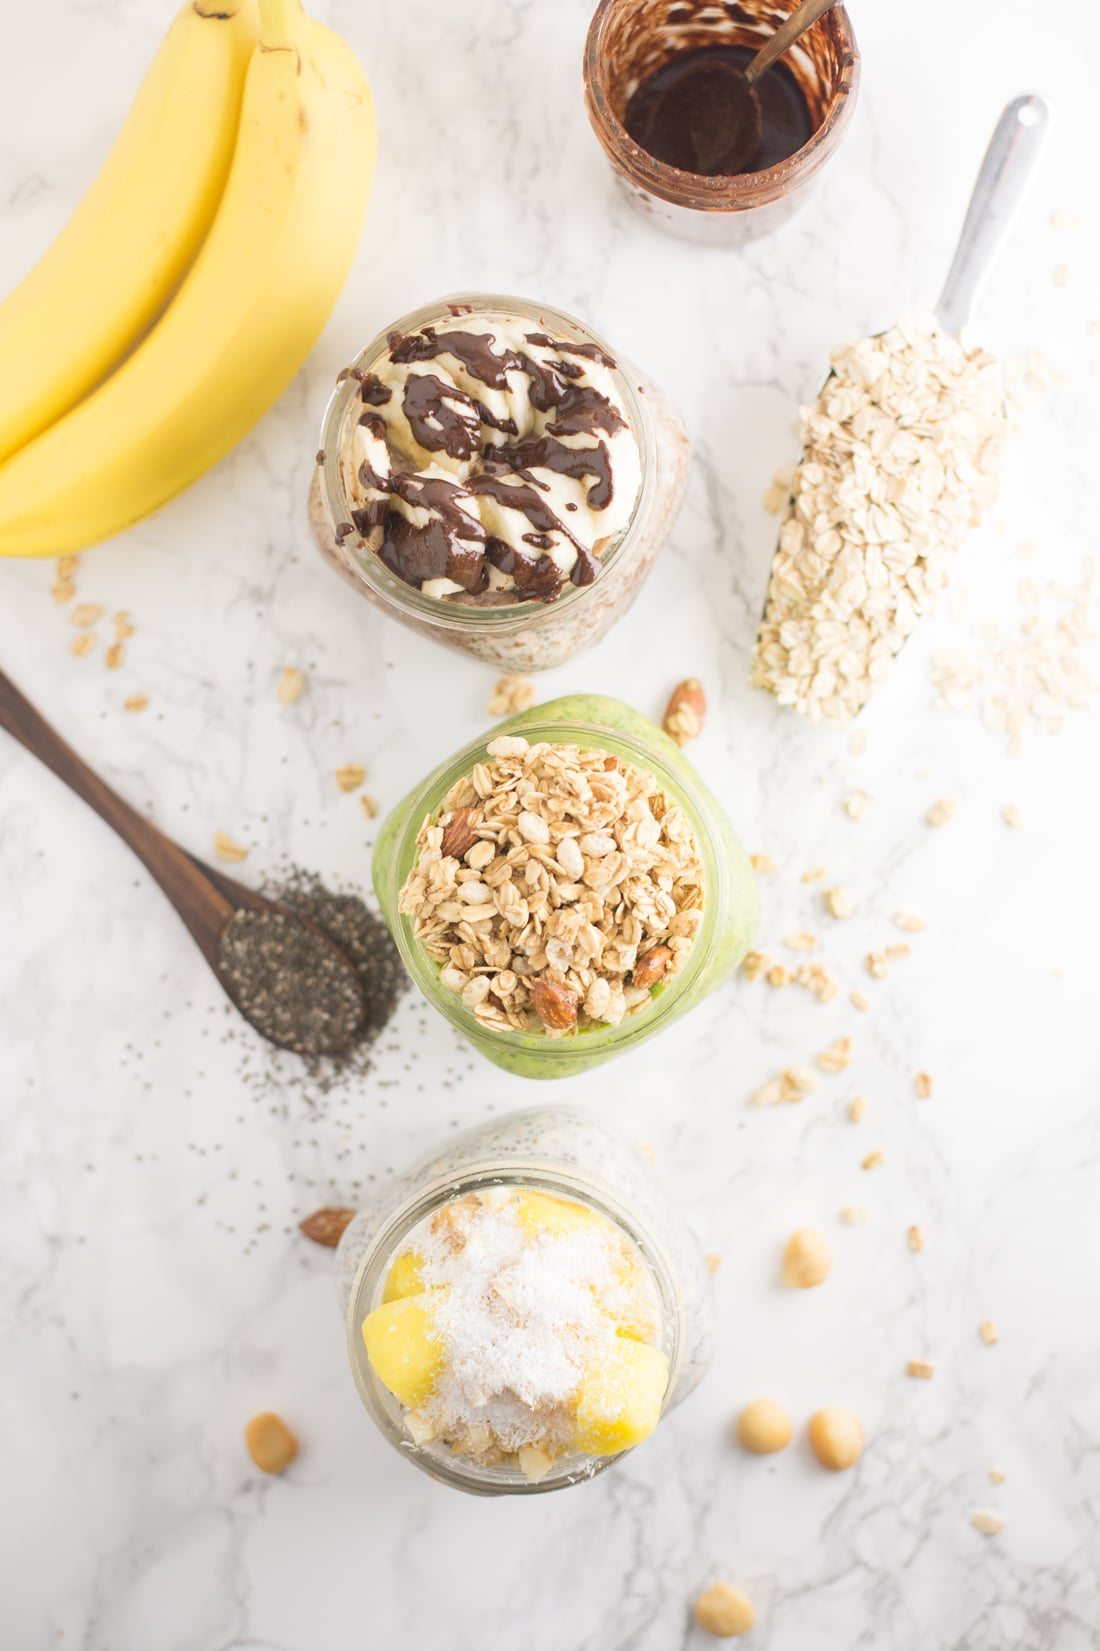 overhead photo of three mason jars with overnight oatmeal. Oats, bananas, macadamia nuts, chocolate and wooden spoon are on marble background.